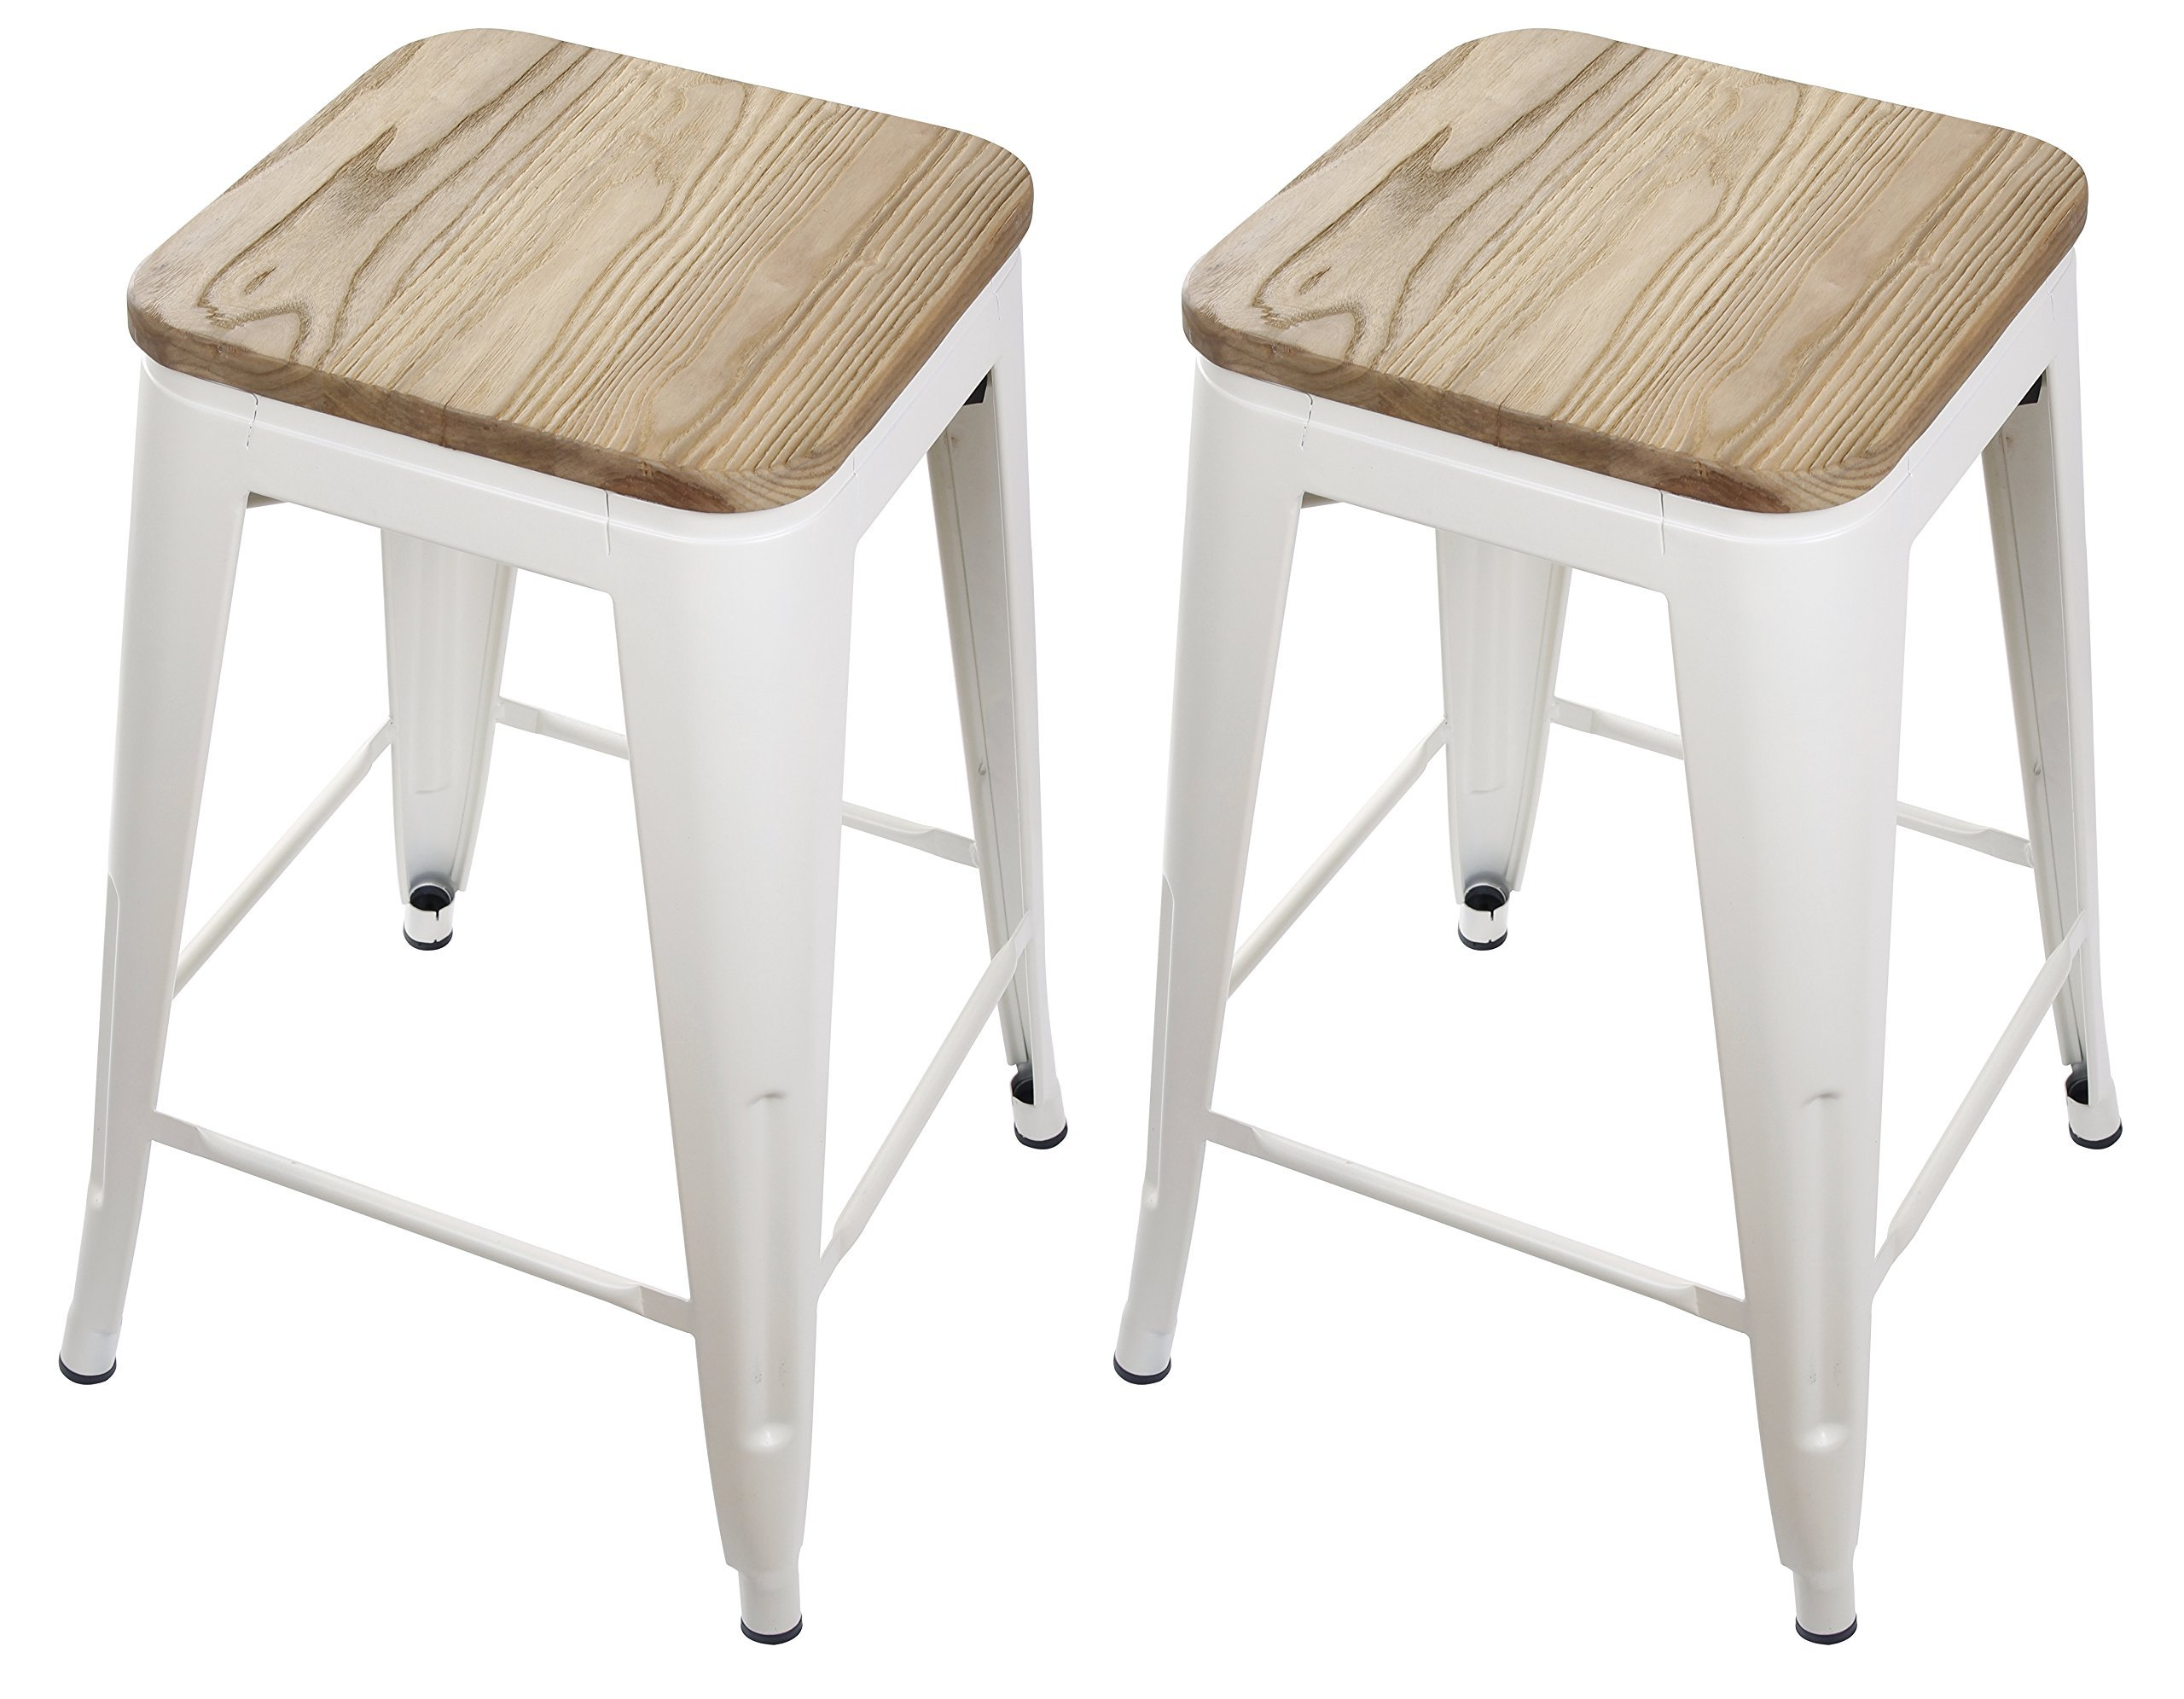 GIA Cream White 24'' Metal Stool with Wooden Seat(Set of 2) - Counter Height Square Backless - Tolix Style - Weight Capacity of 300+ Pounds - Ready to use - Extra Durable and Stackable